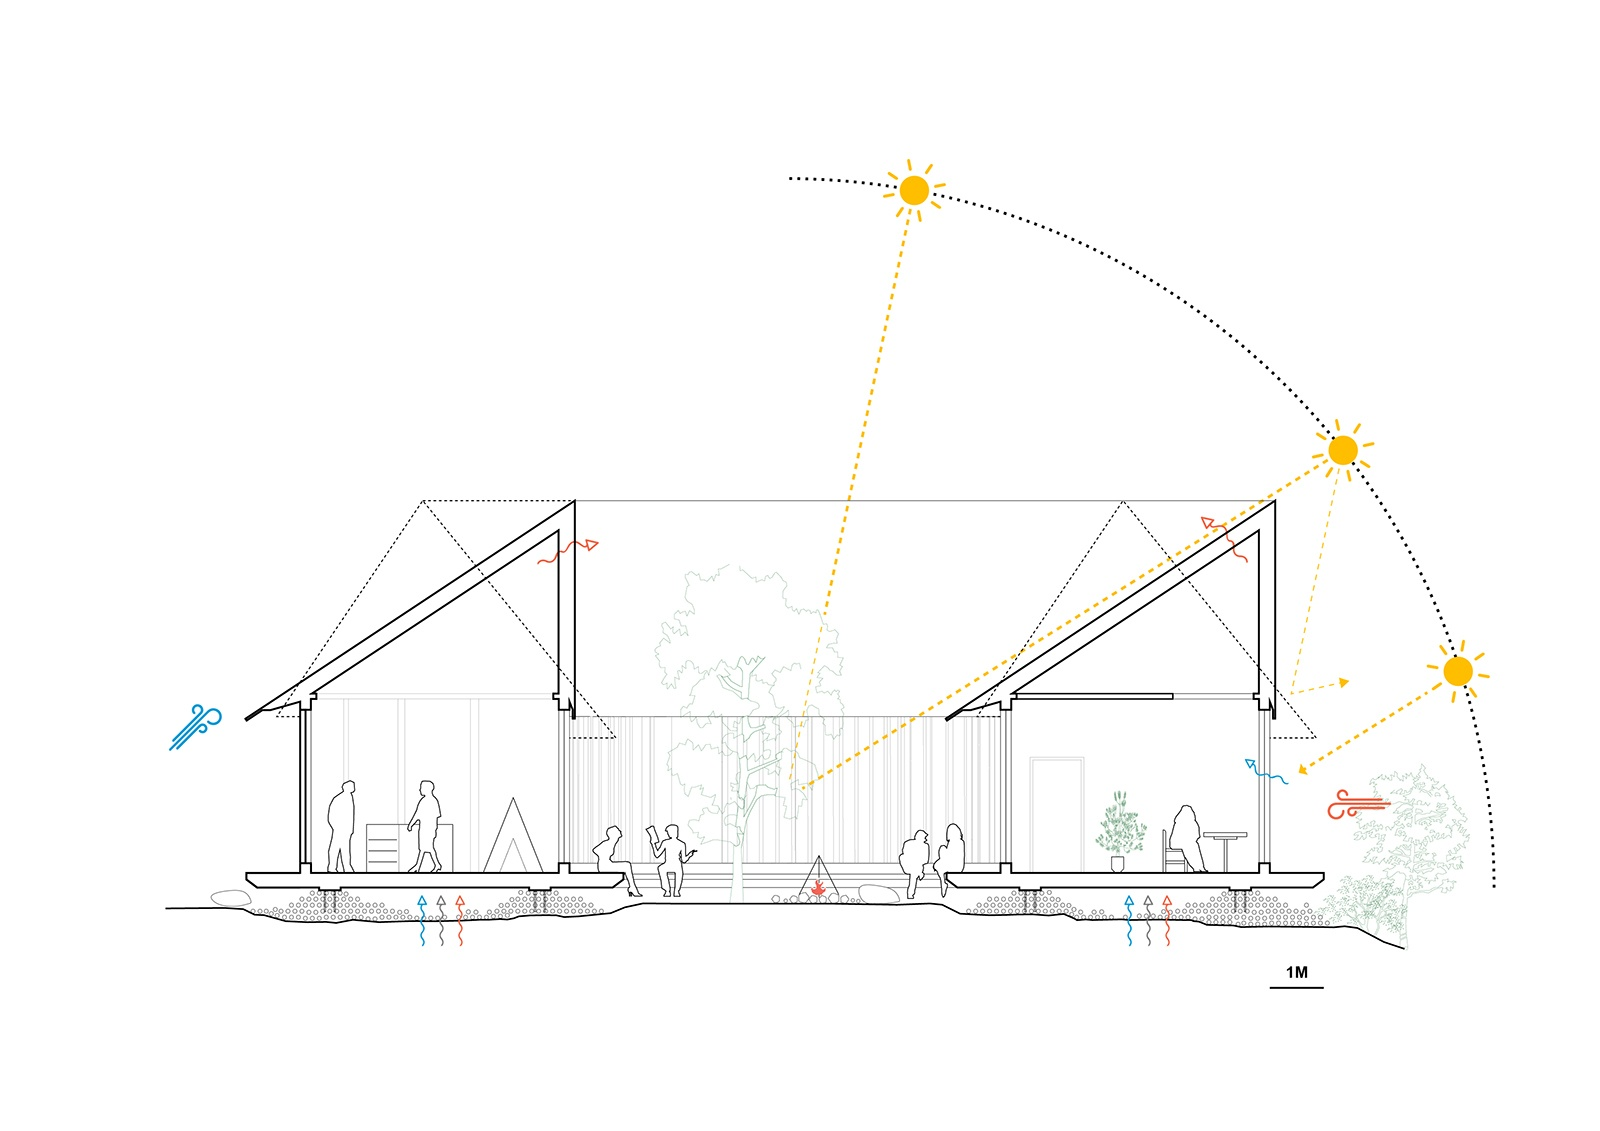 Center House Passive Section Drawing by Third Nature - Structured Environment - Henrik Innovation_1600